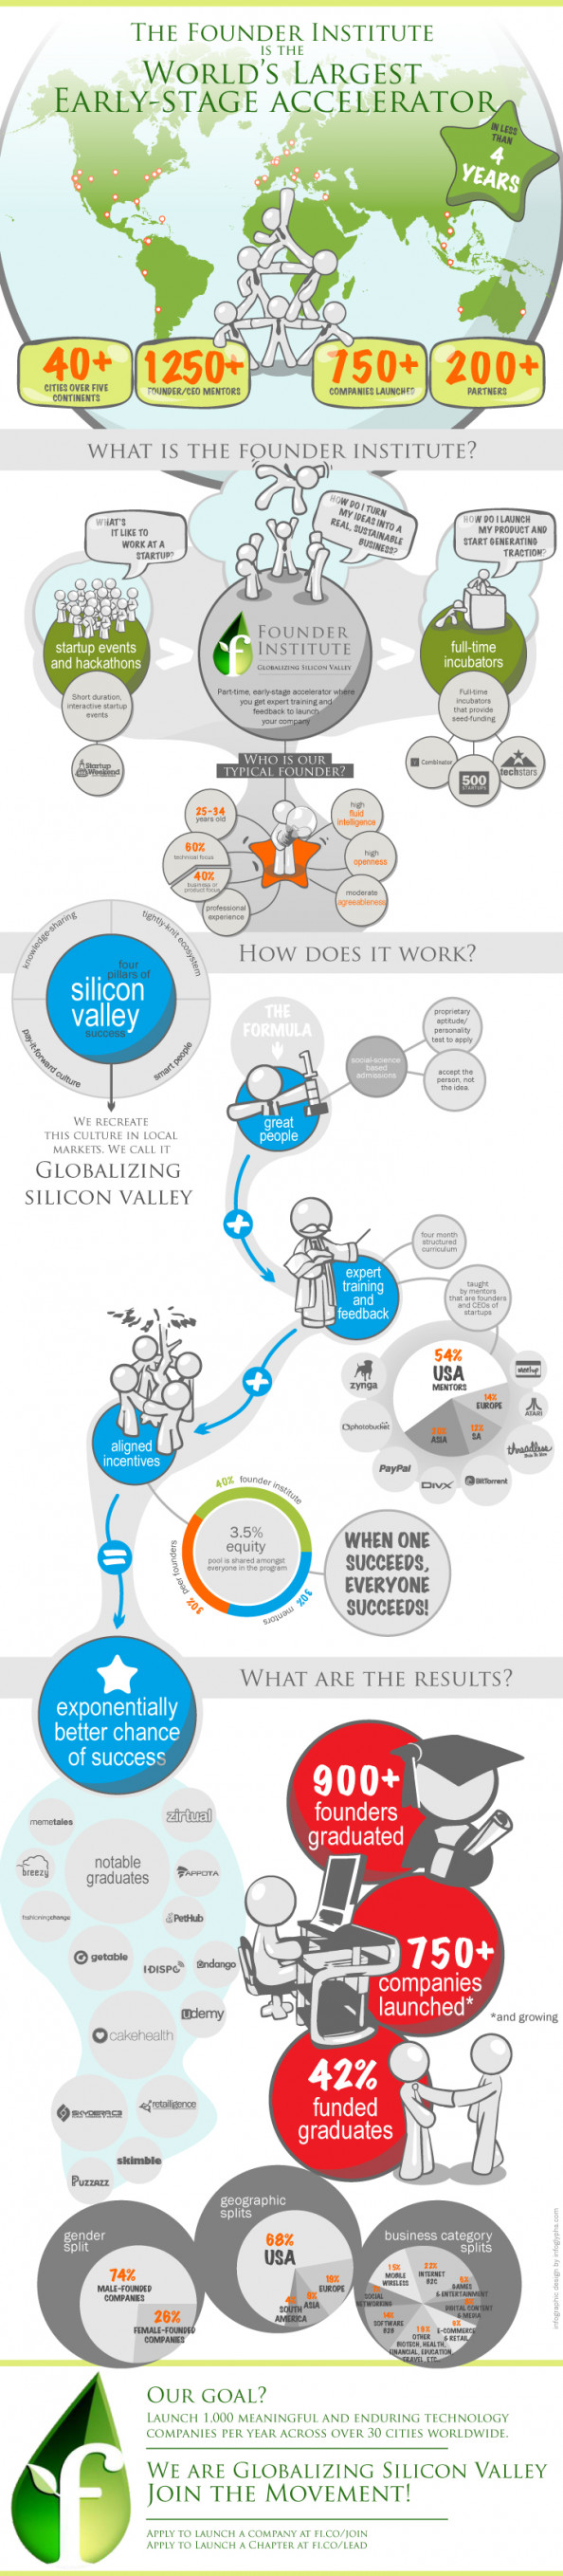 "The Founder Institute's Model for ""Globalizing Silicon Valley"" Infographic"